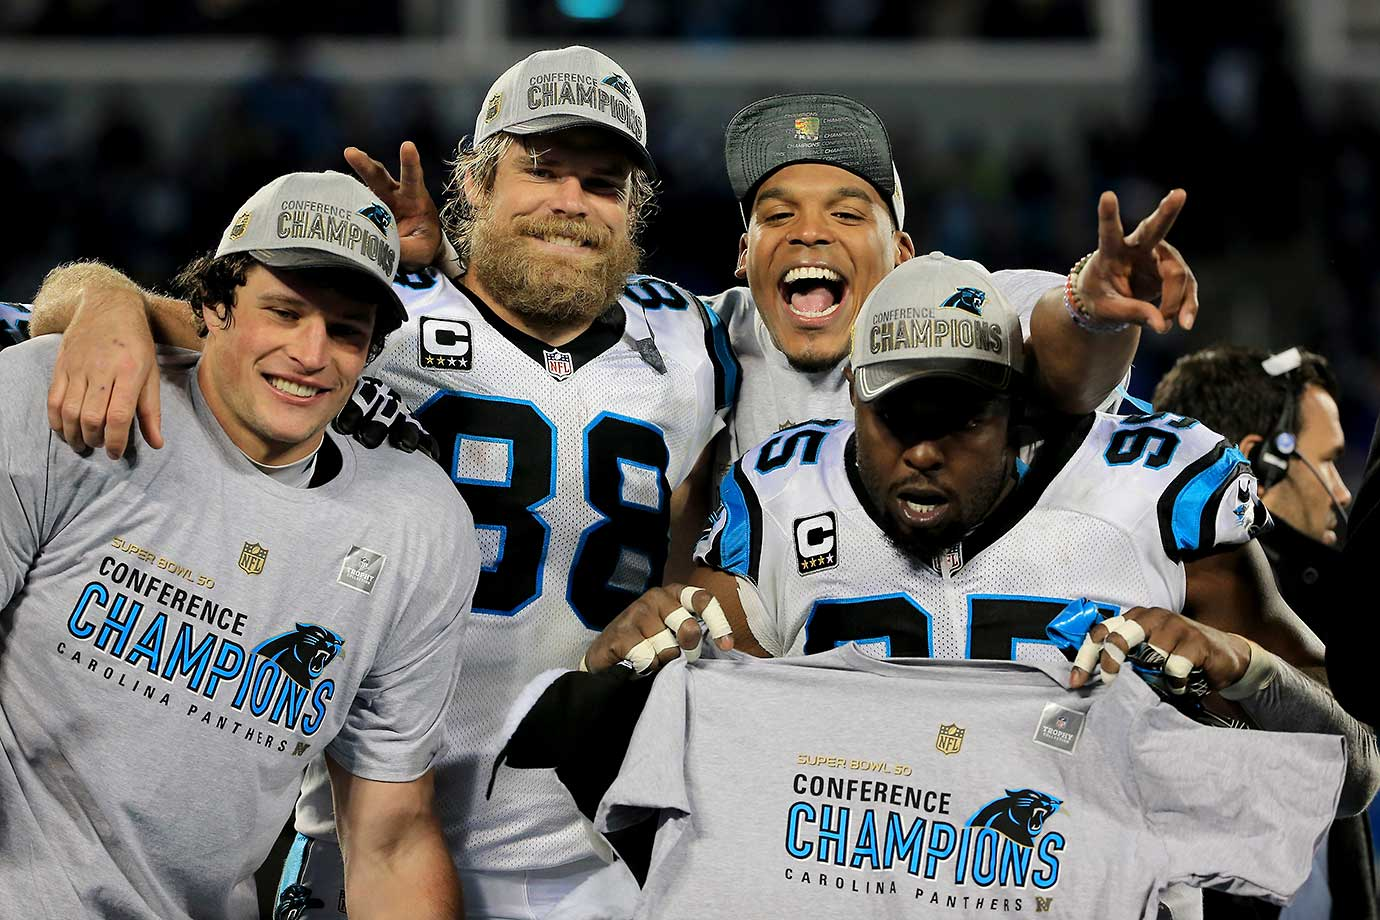 Luke Kuechly, Greg Olsen, Cam Newton and Charles Johnson celebrate a win that earned them a trip to Super Bowl 50.